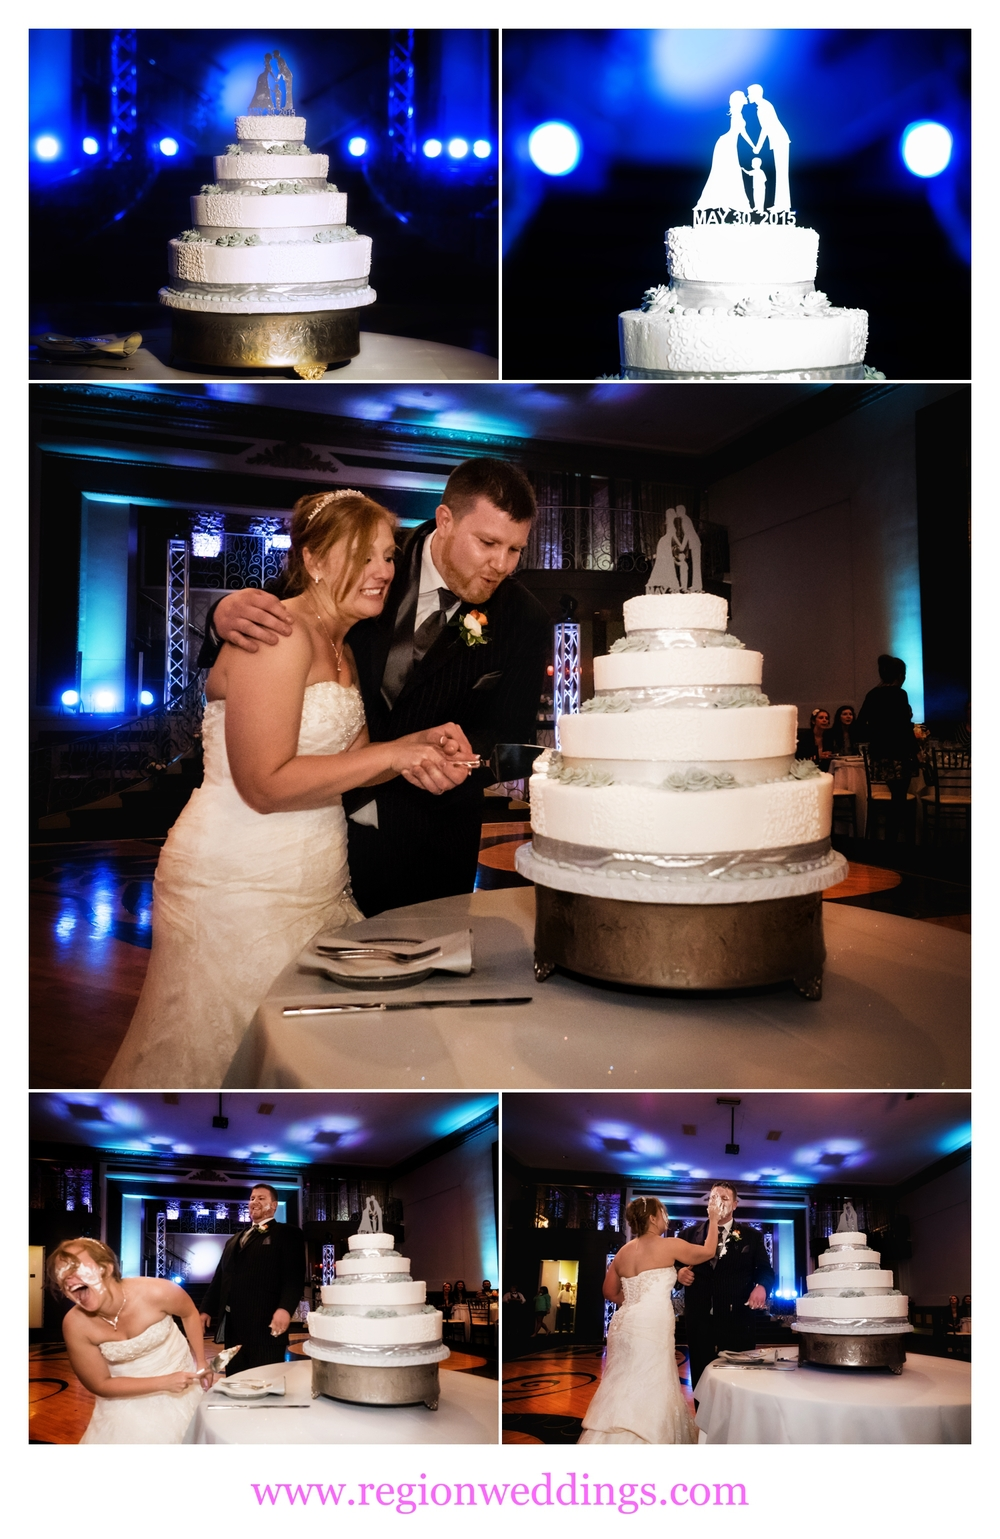 The bride and groom cut the cake at The Allure during their wedding reception.